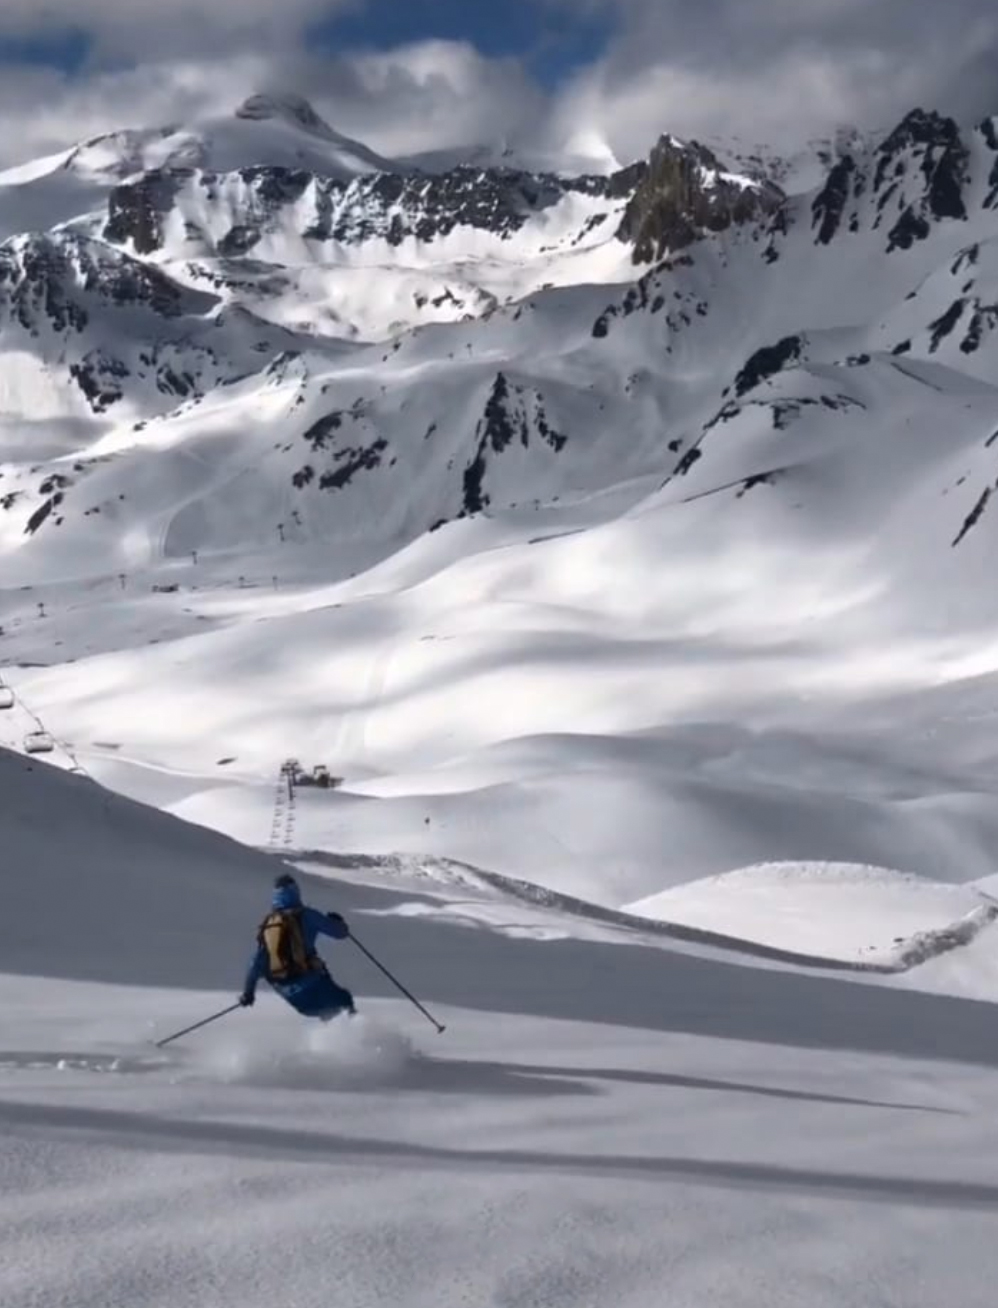 man skiing on untouched snow